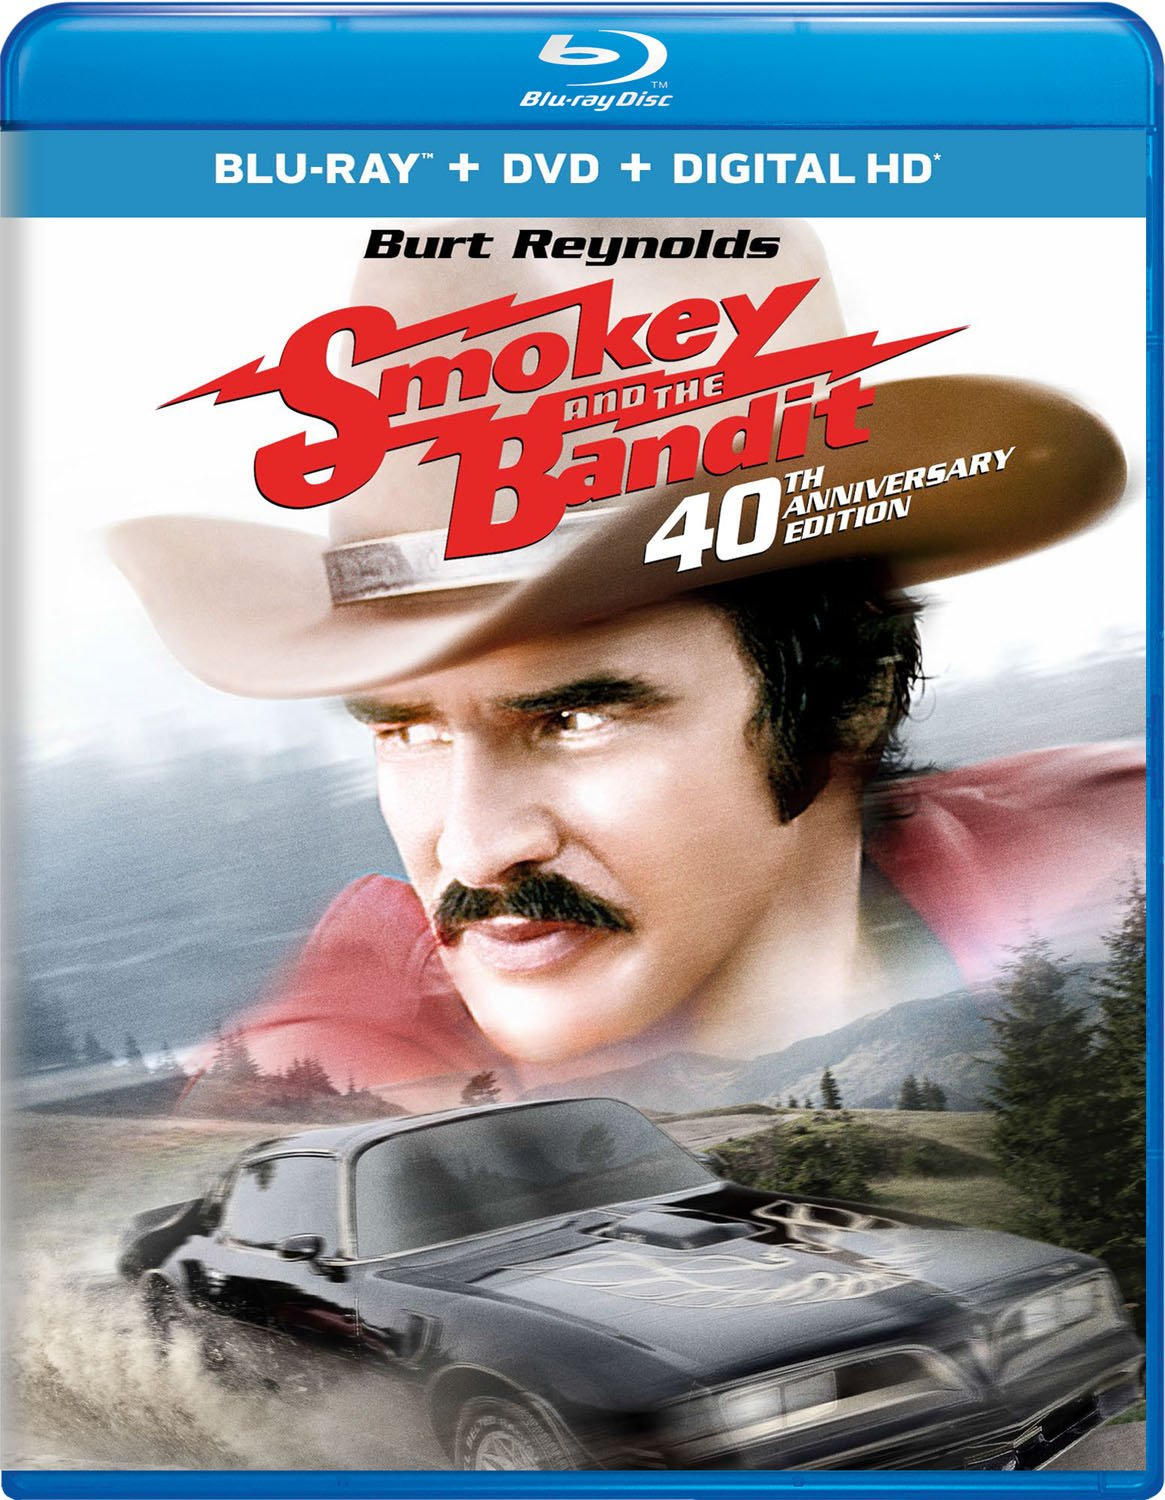 Blu-ray : Smokey and the Bandit (40th Anniversary Edition) (With DVD, Ultraviolet Digital Copy, Anniversary Edition, 2 Pack, Digitally Mastered in HD)